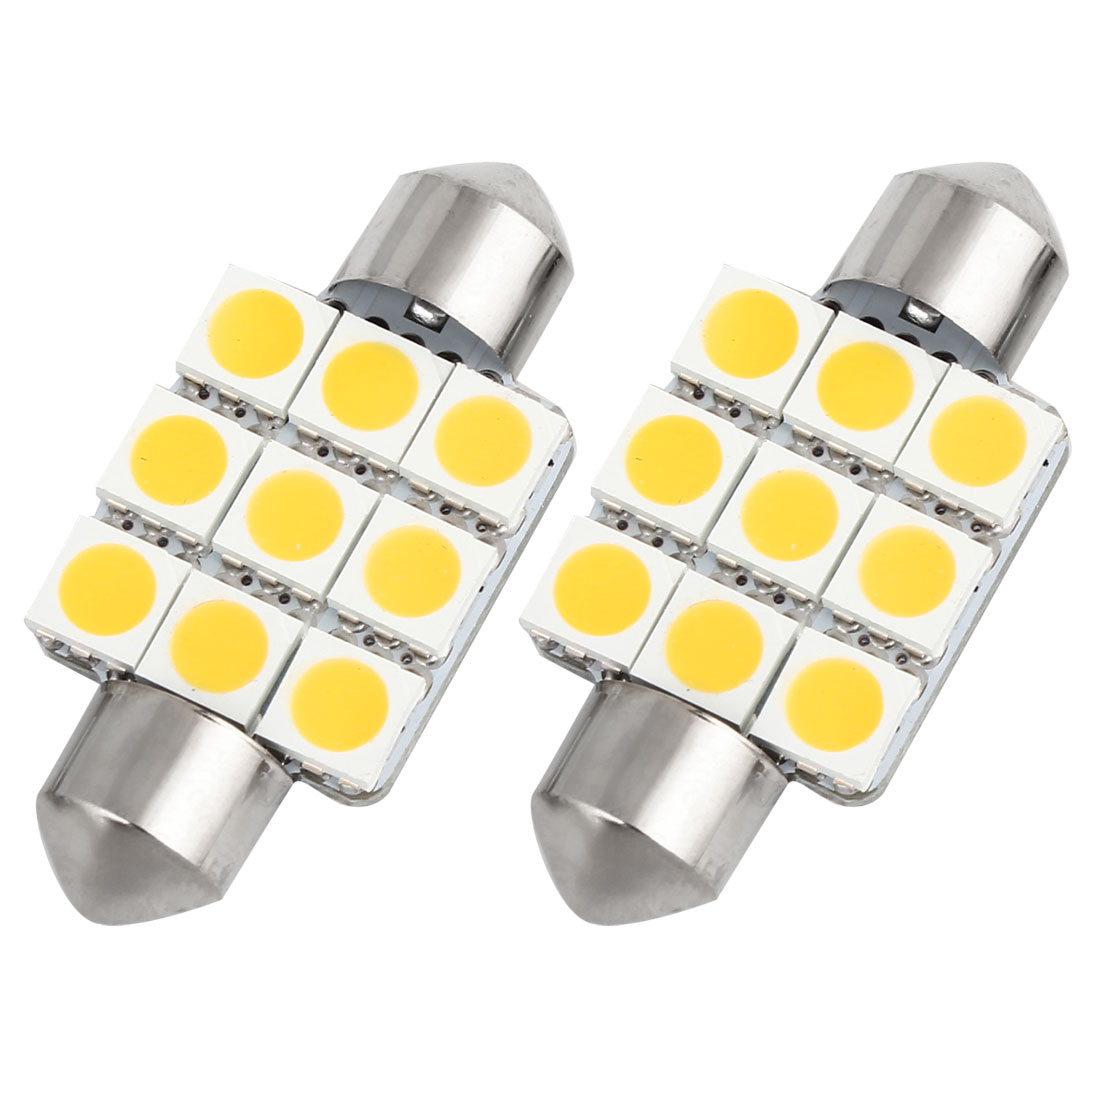 2 pcs 36mm Warm White 9 LED 5050 SMD Festoon Dome Light Lamp DC 12V 3021 DE3021 Internal